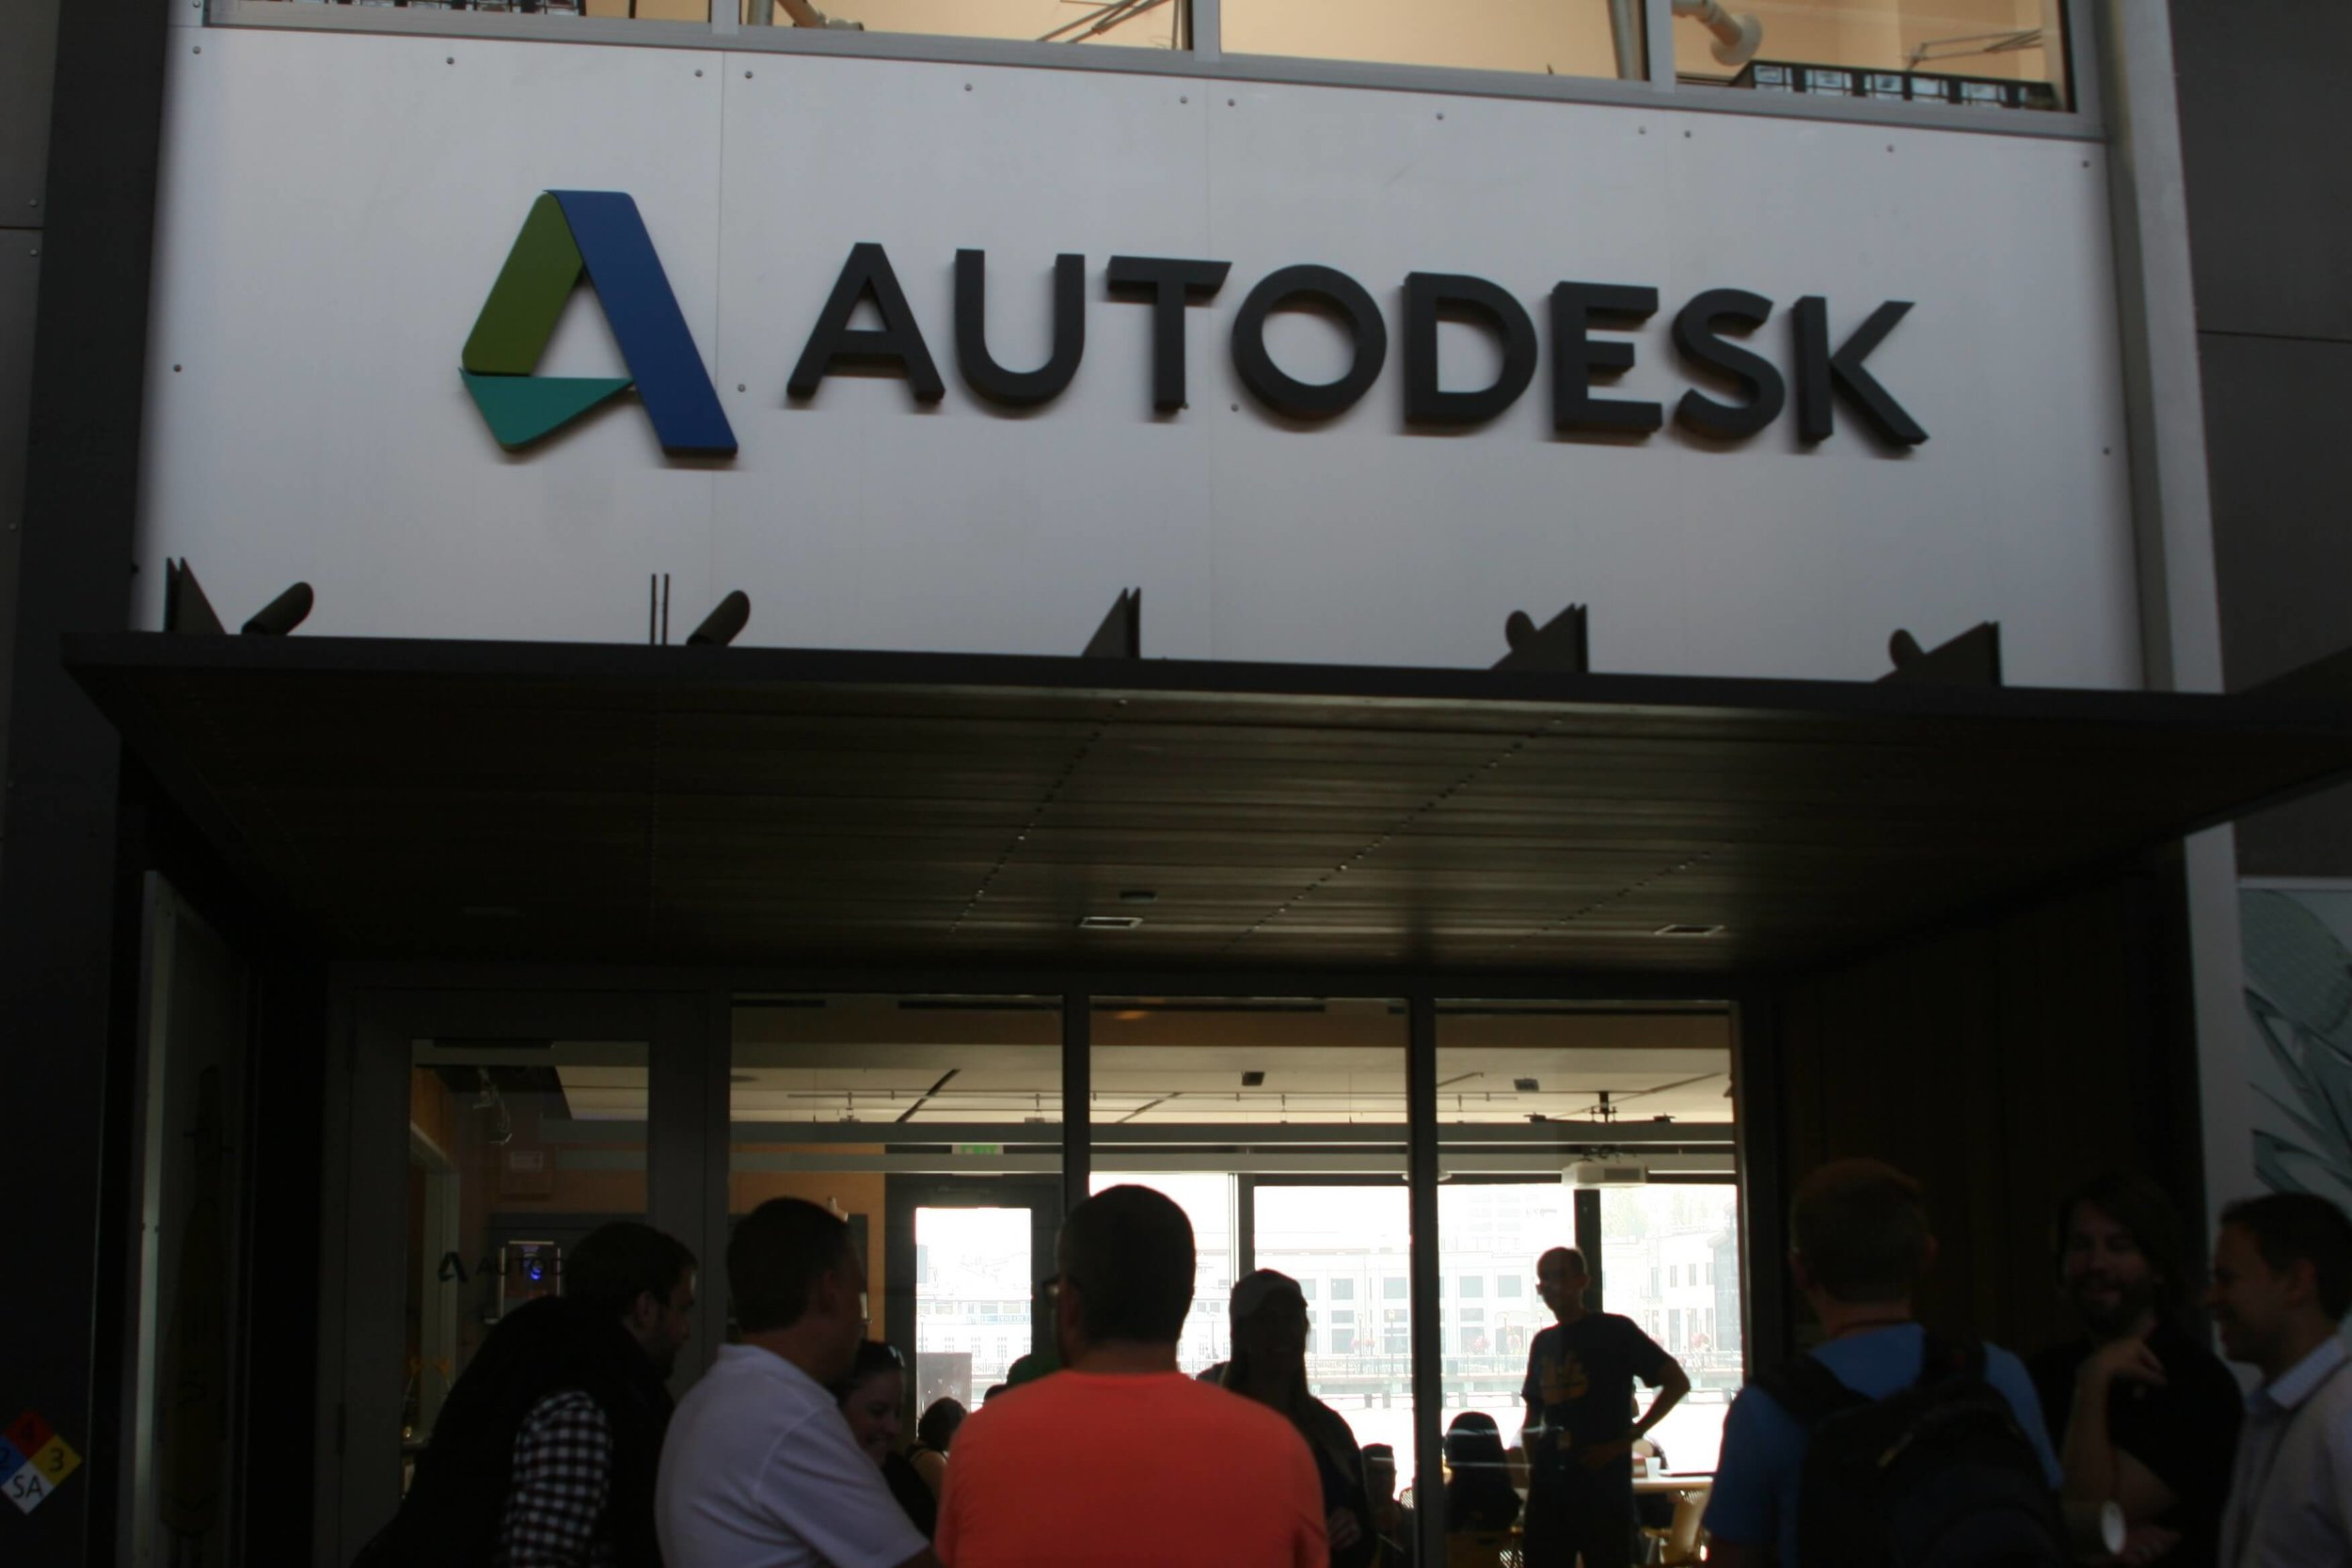 Autodesk maker space at Pier 9